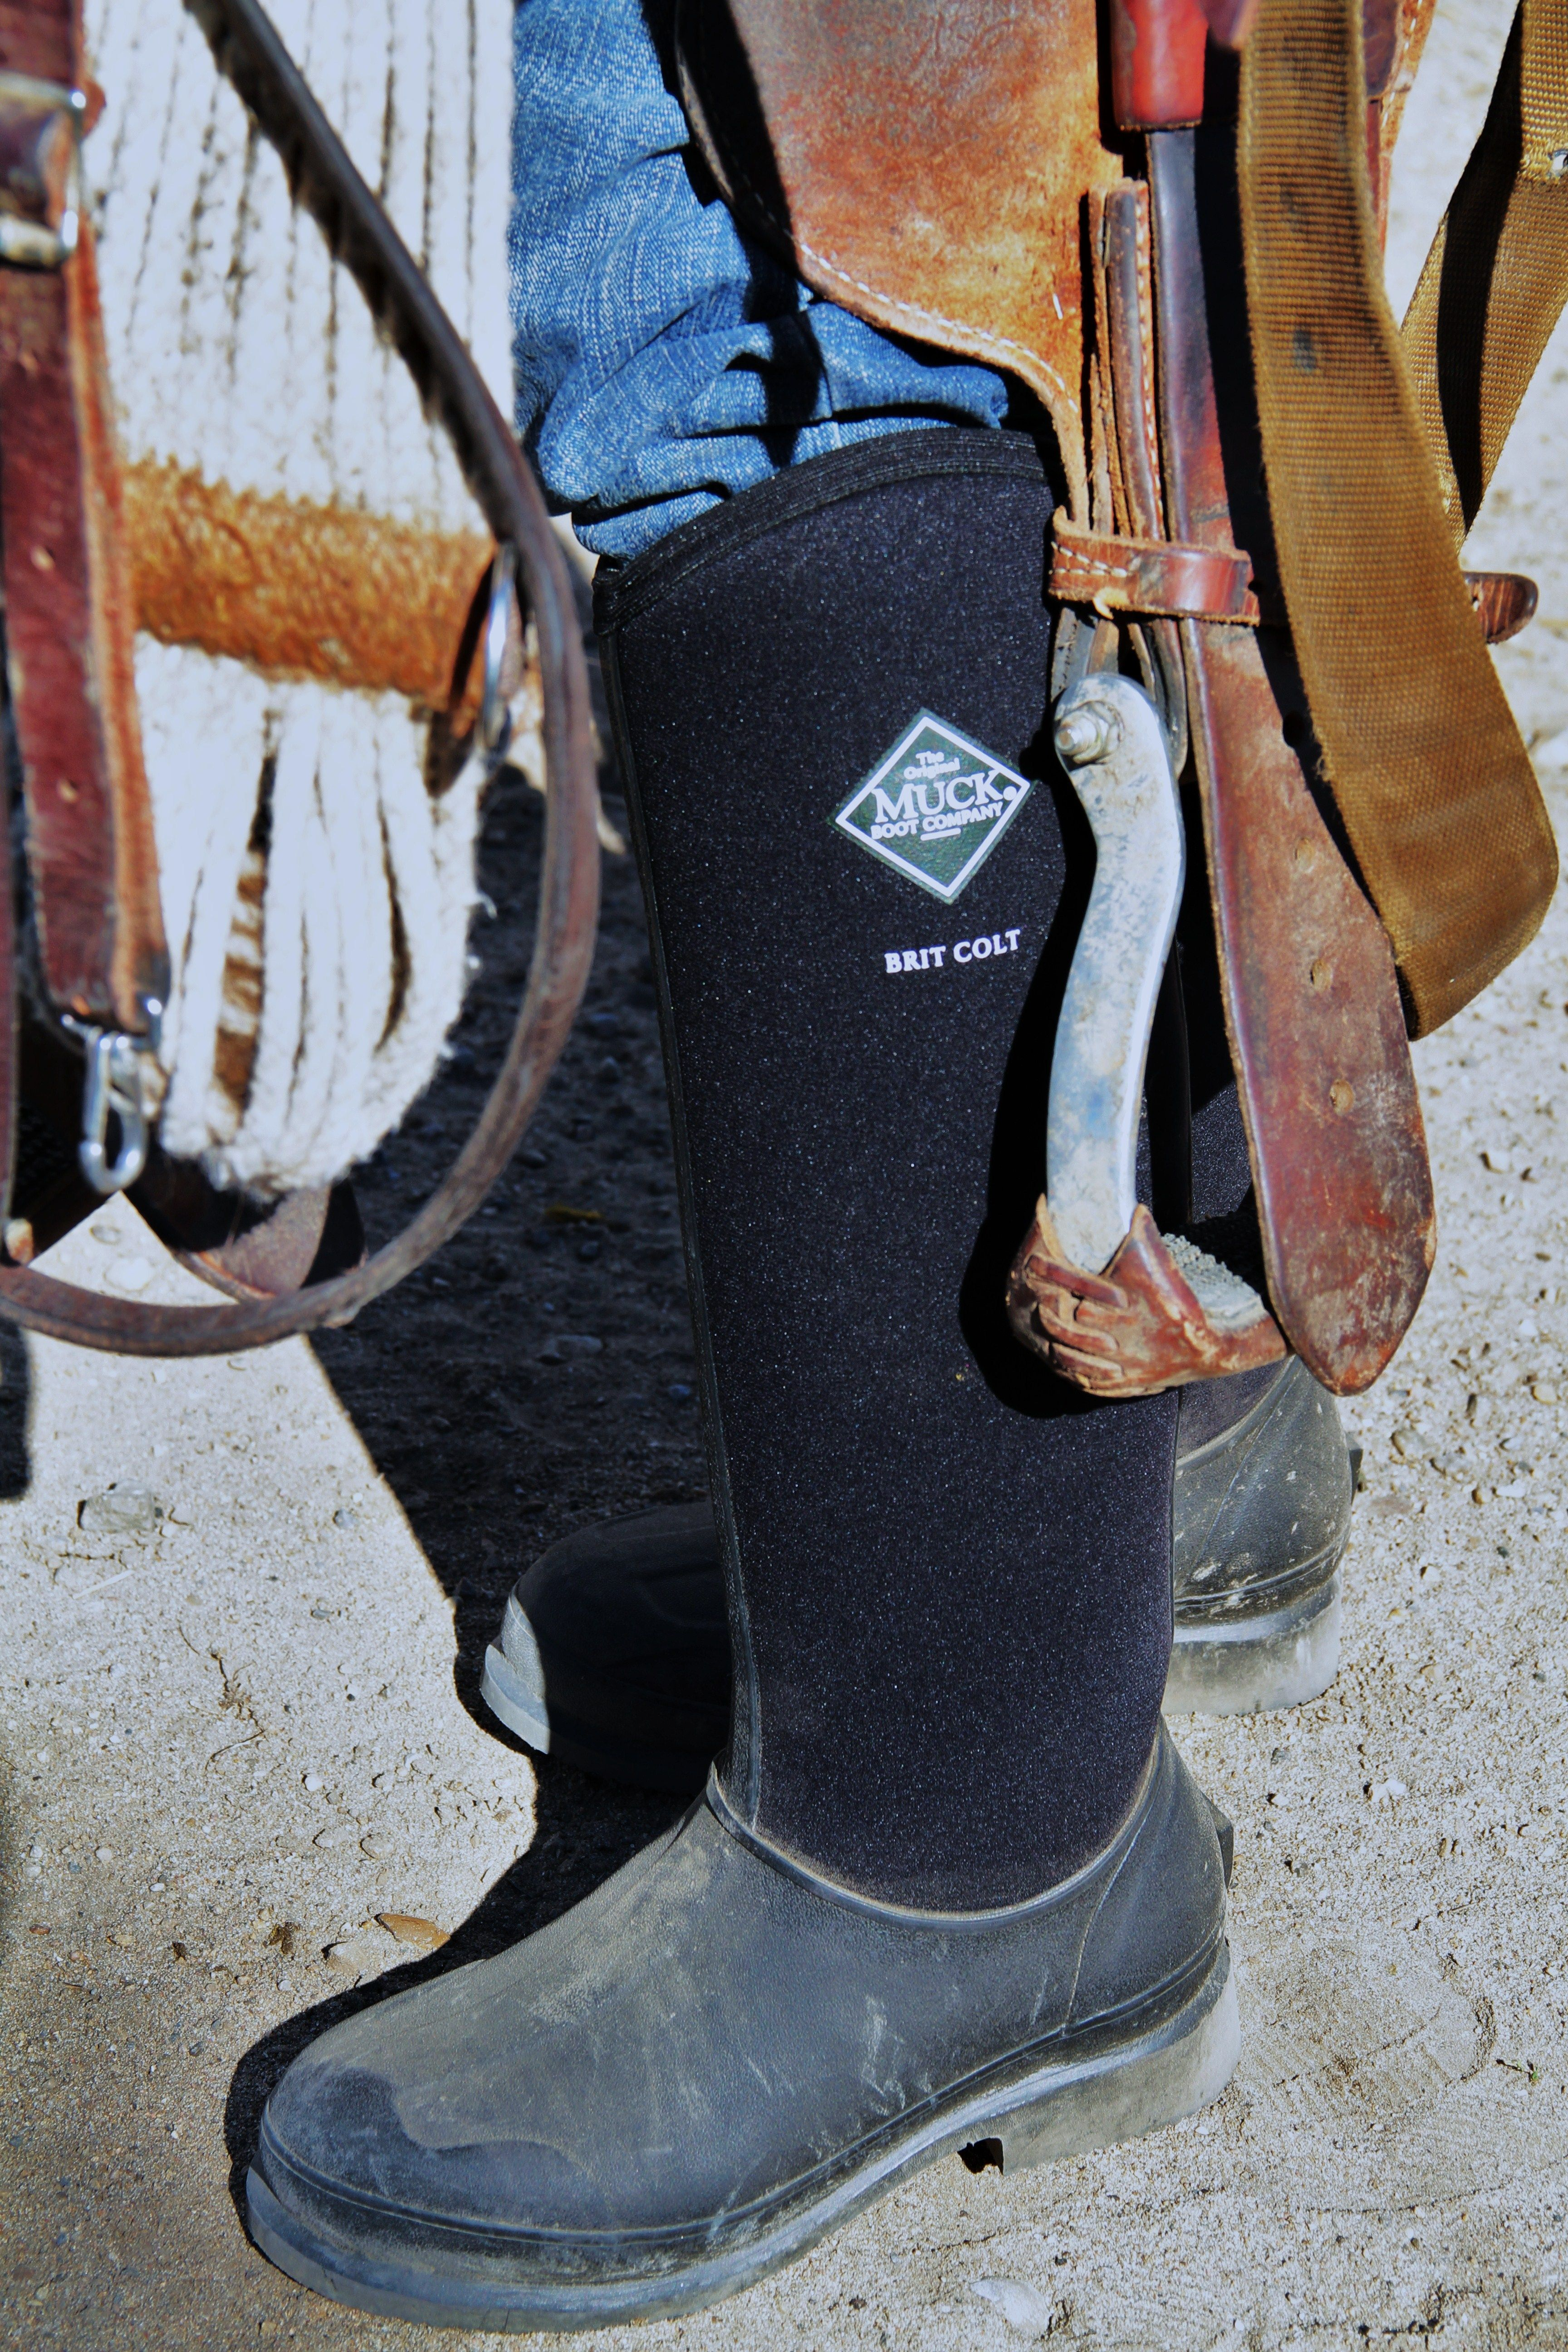 Muck Boot Riding Boots